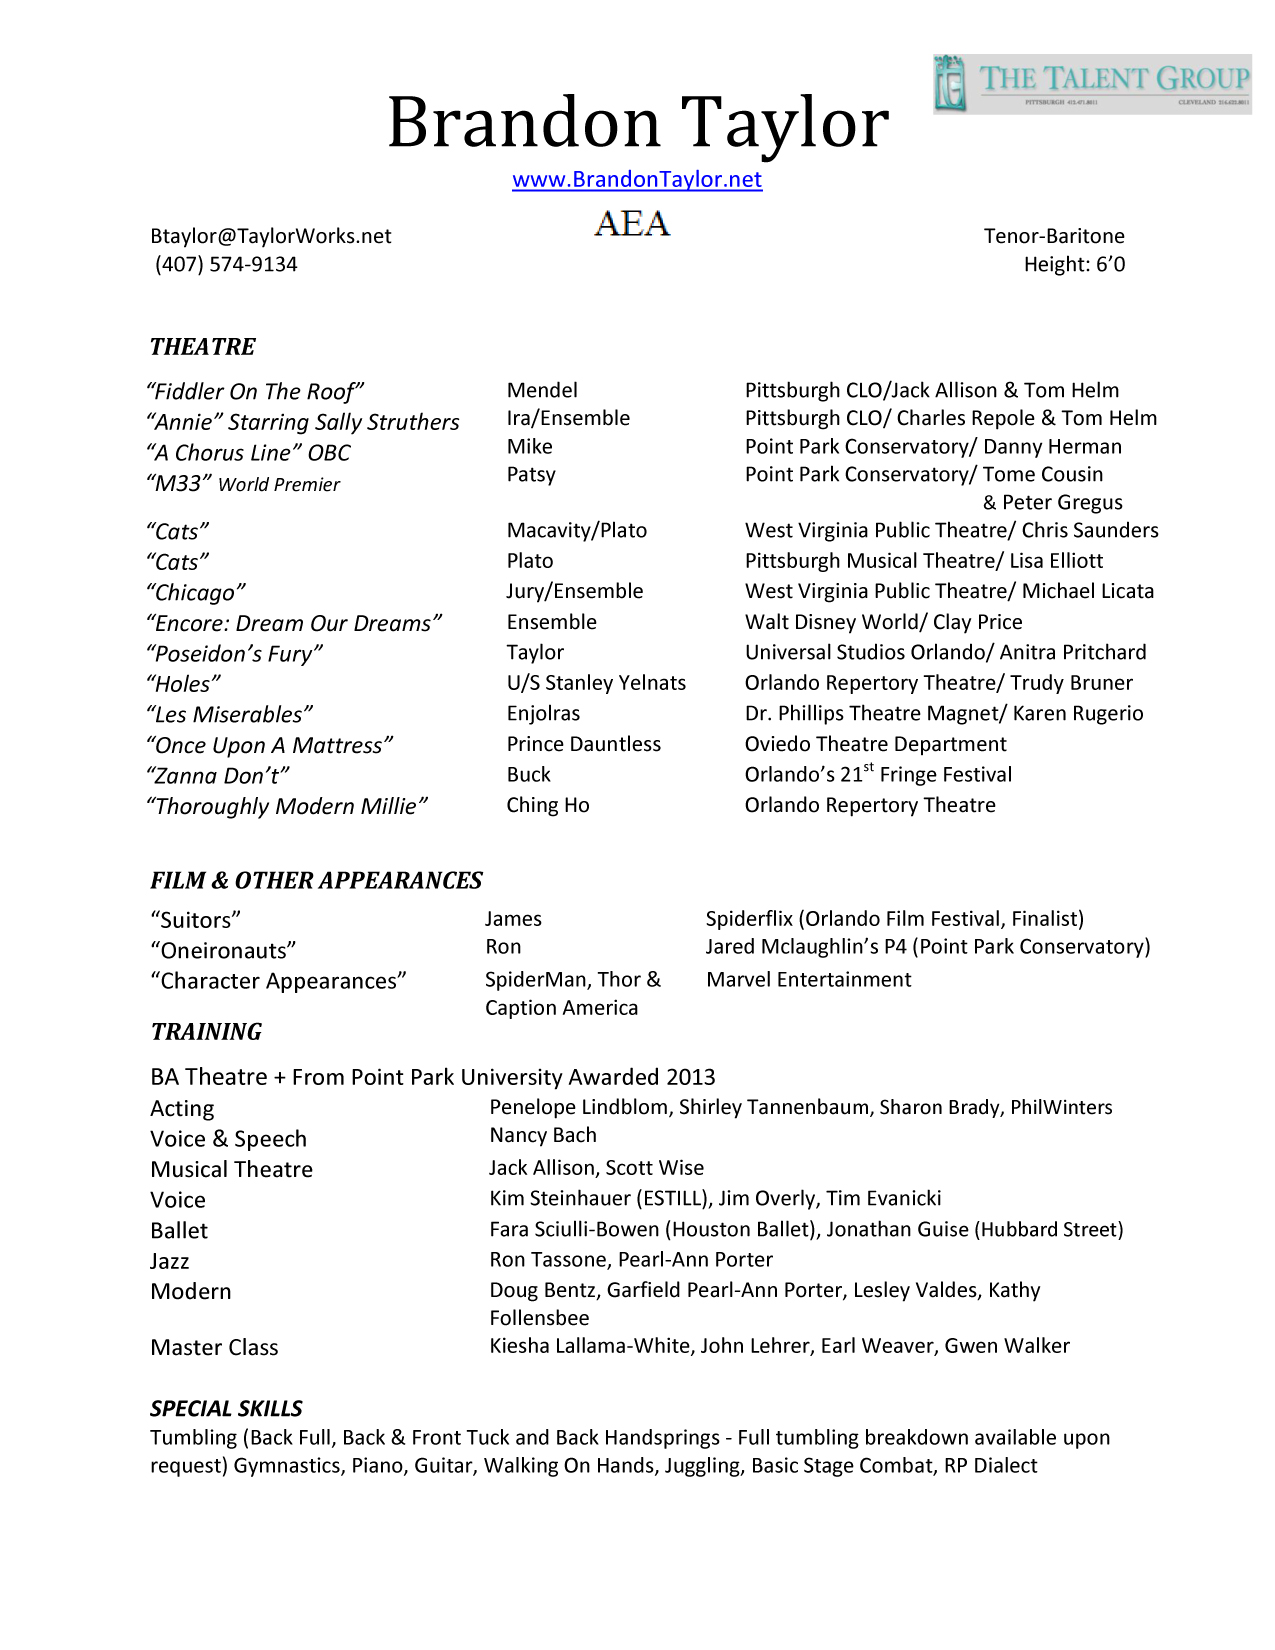 Film Production Assistant Resume Sample